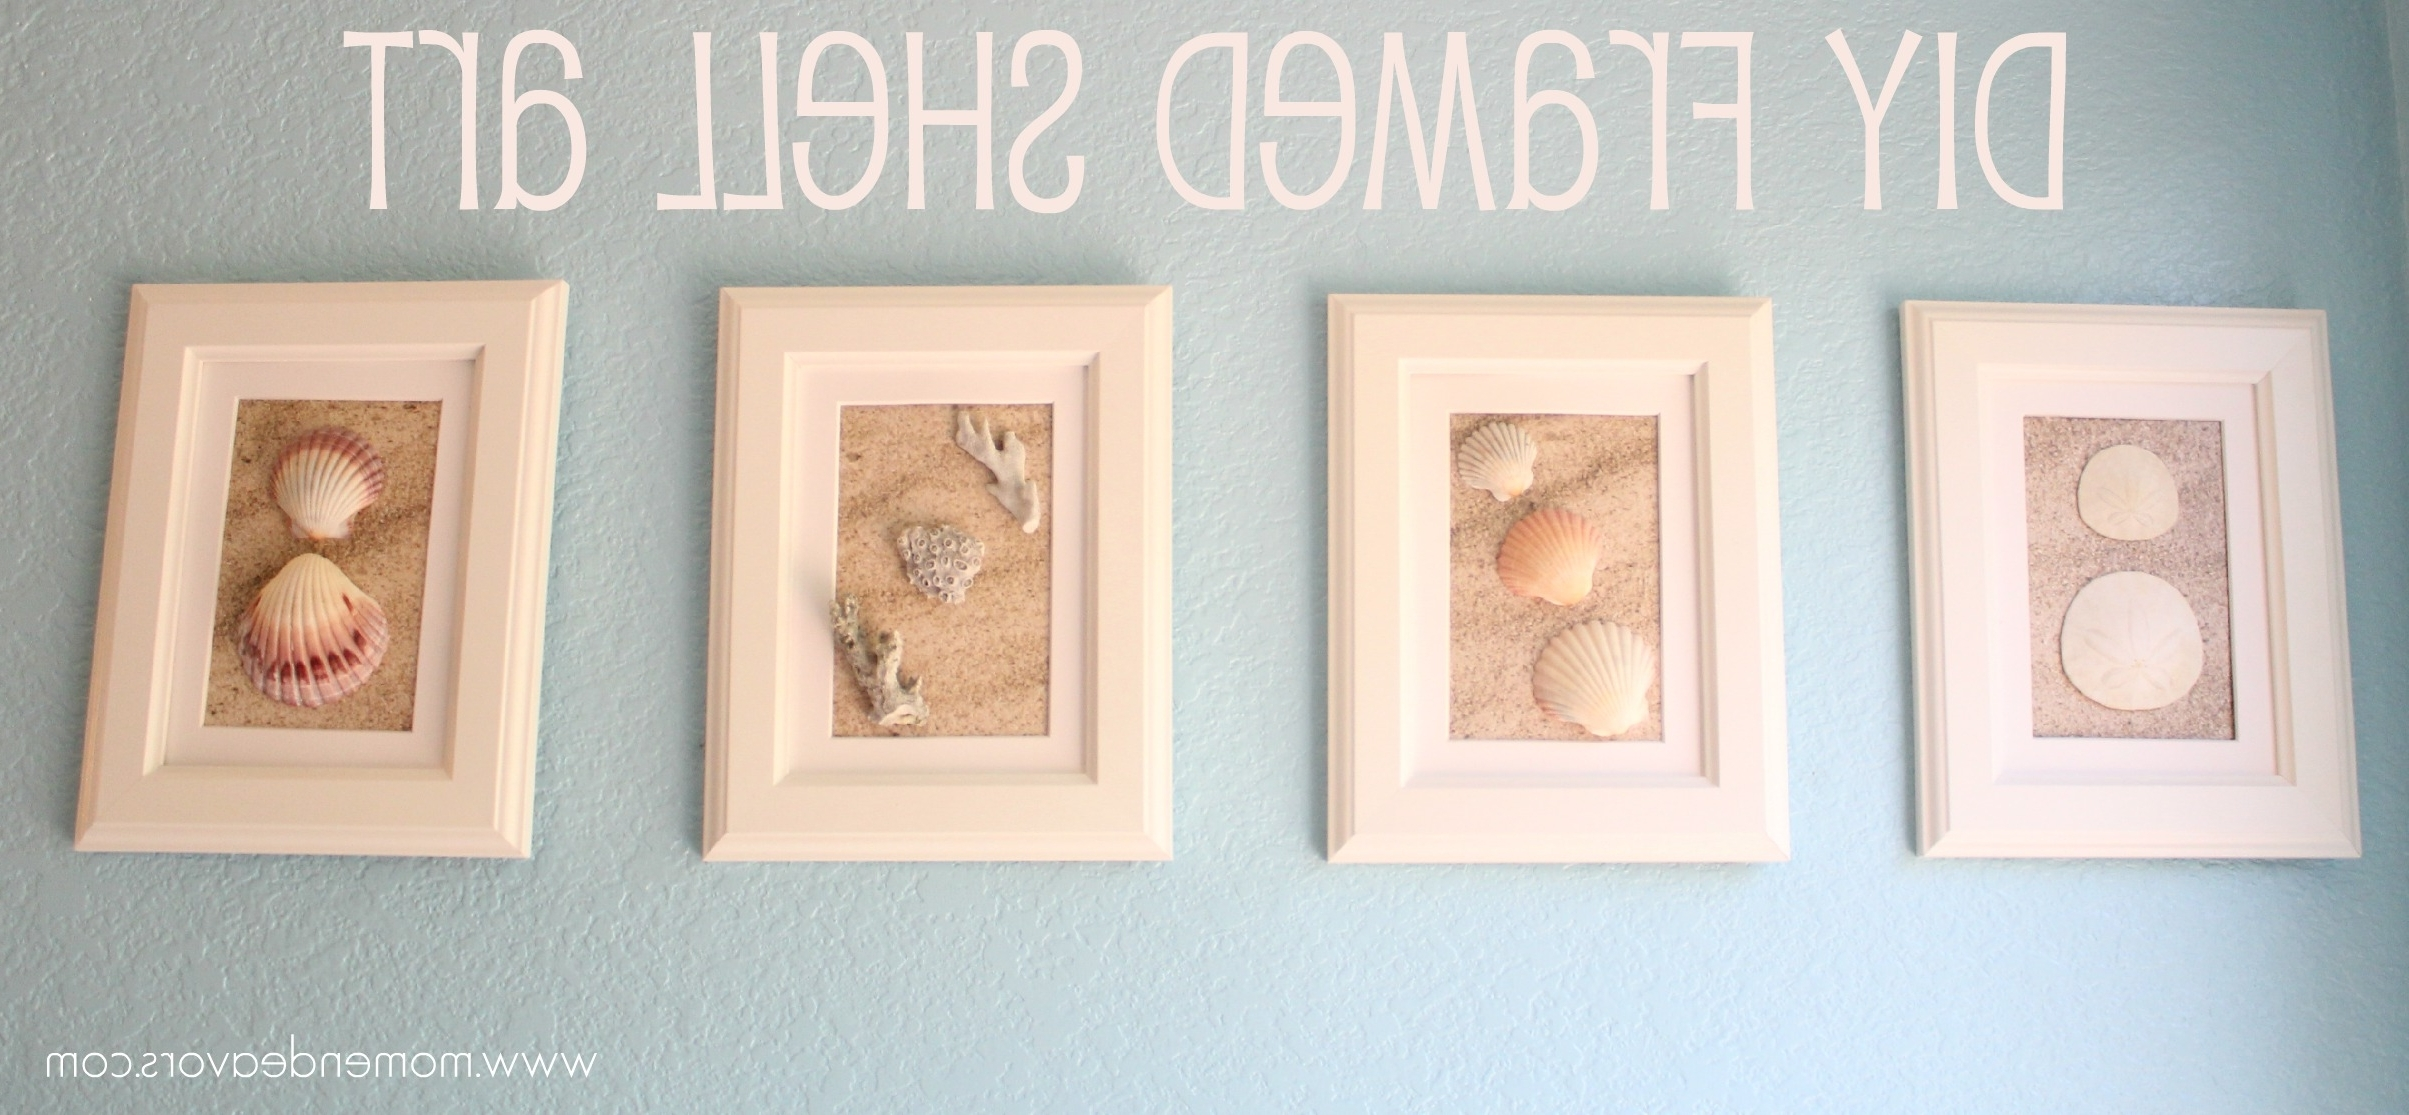 Widely Used Framed Art Prints For Bathroom For Diy Framed Shell Art (View 15 of 15)